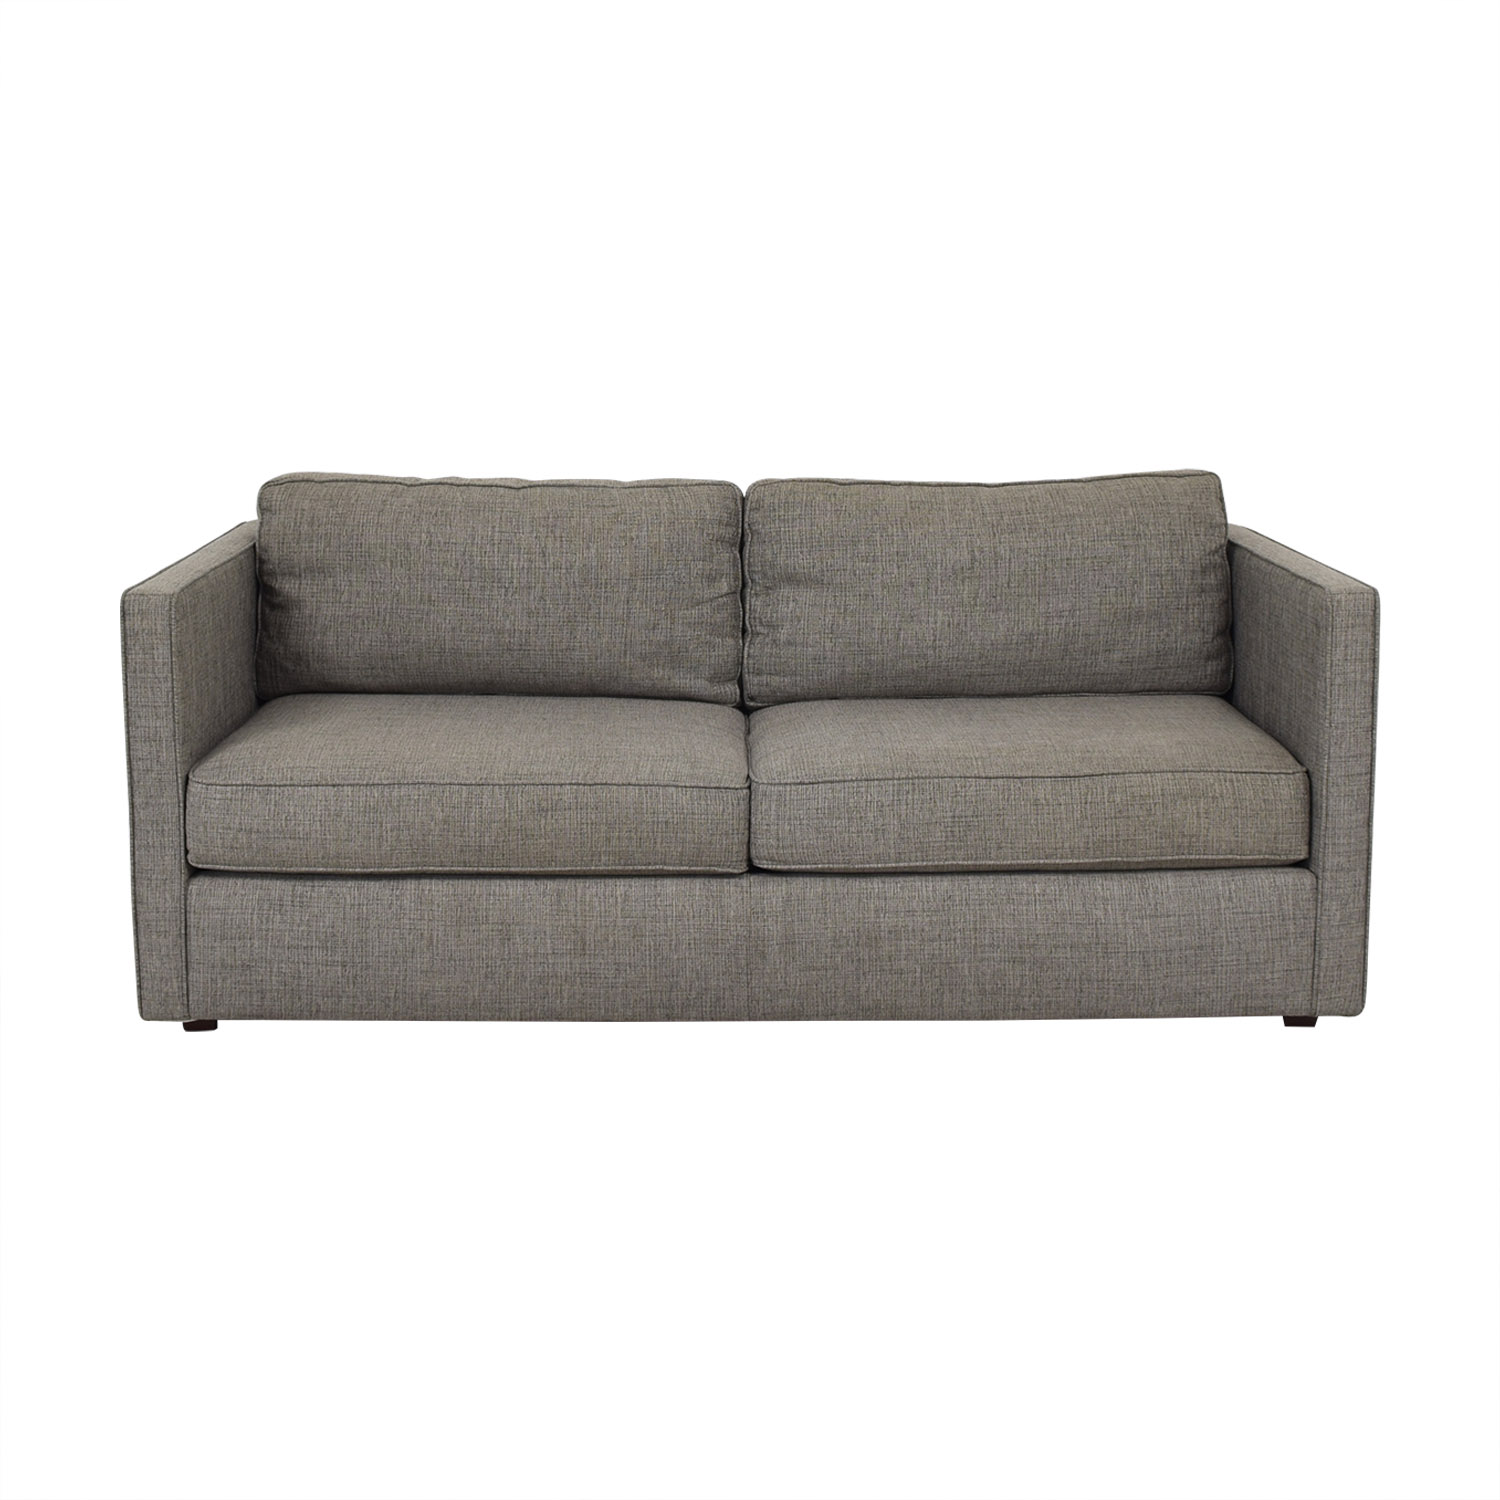 Room & Board Room & Board Watson Mid Century Sofa on sale